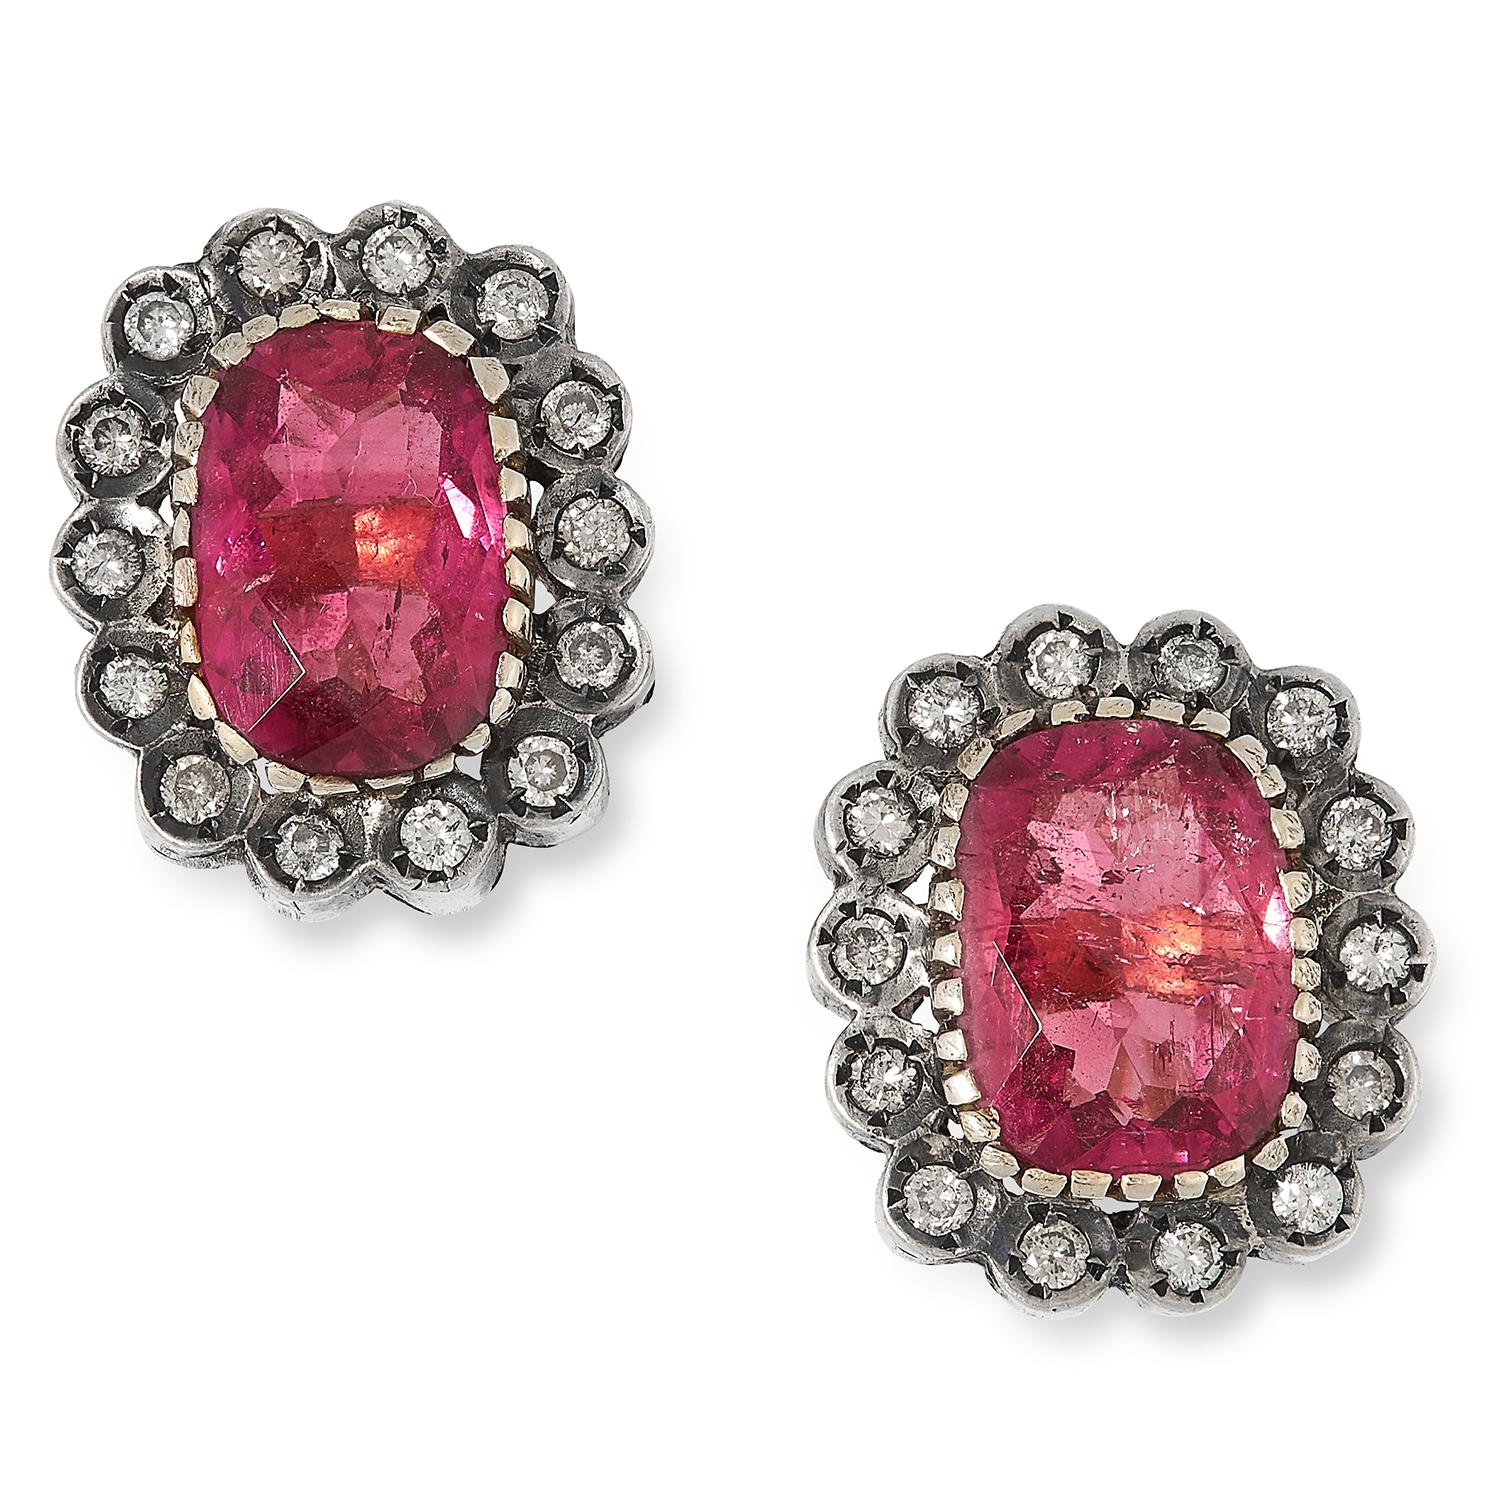 TOURMALINE AND DIAMOND CLUSTER EARRINGS each set with a cushion cut tourmaline totalling